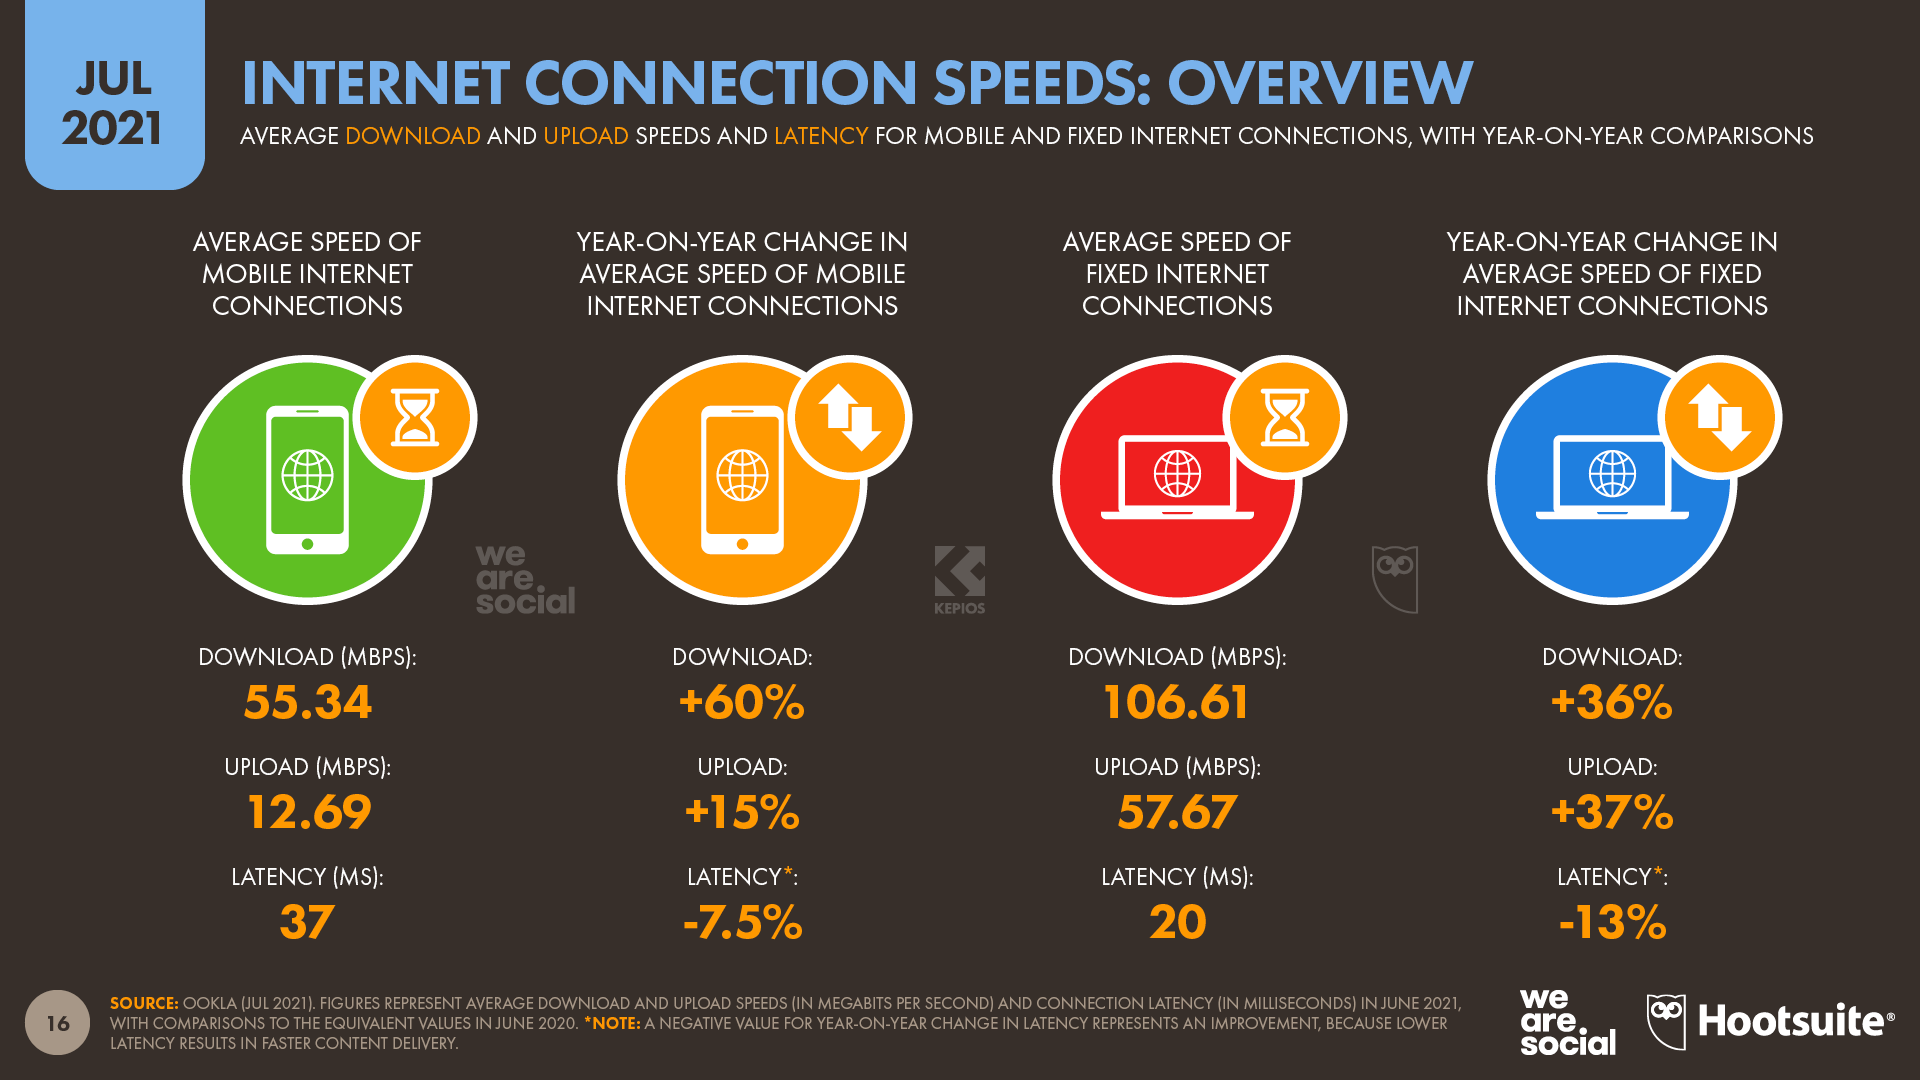 Internet Connection Speeds Overview July 2021 DataReportal